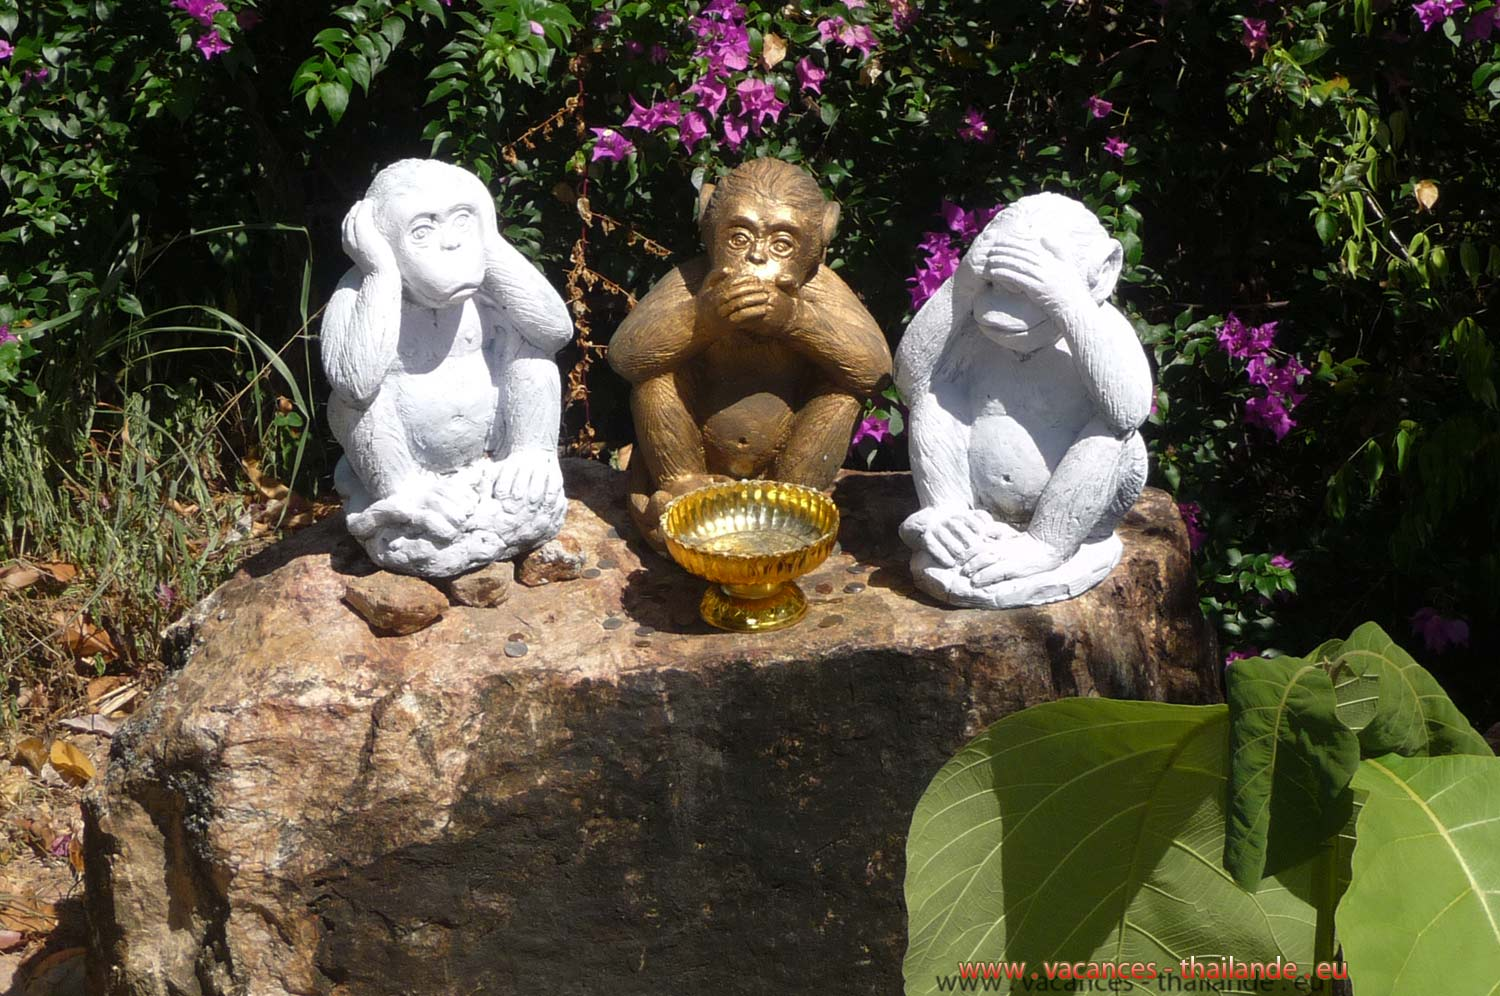 hree wise monkeys in very beautiful Buddhist temples in Thailand